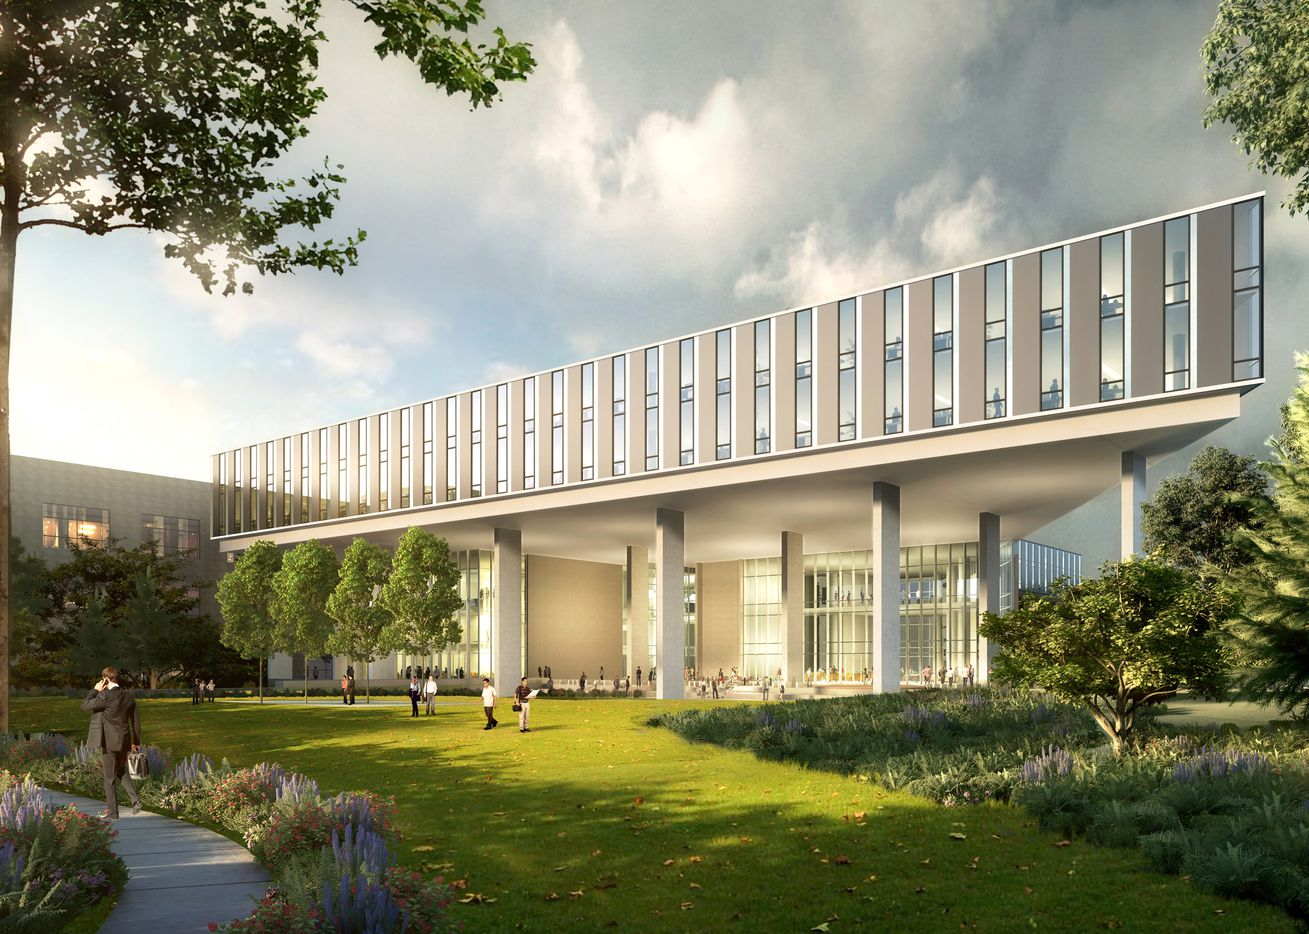 Architects Perkins + Will and Corgan designed the new Baylor Scott & White campus.